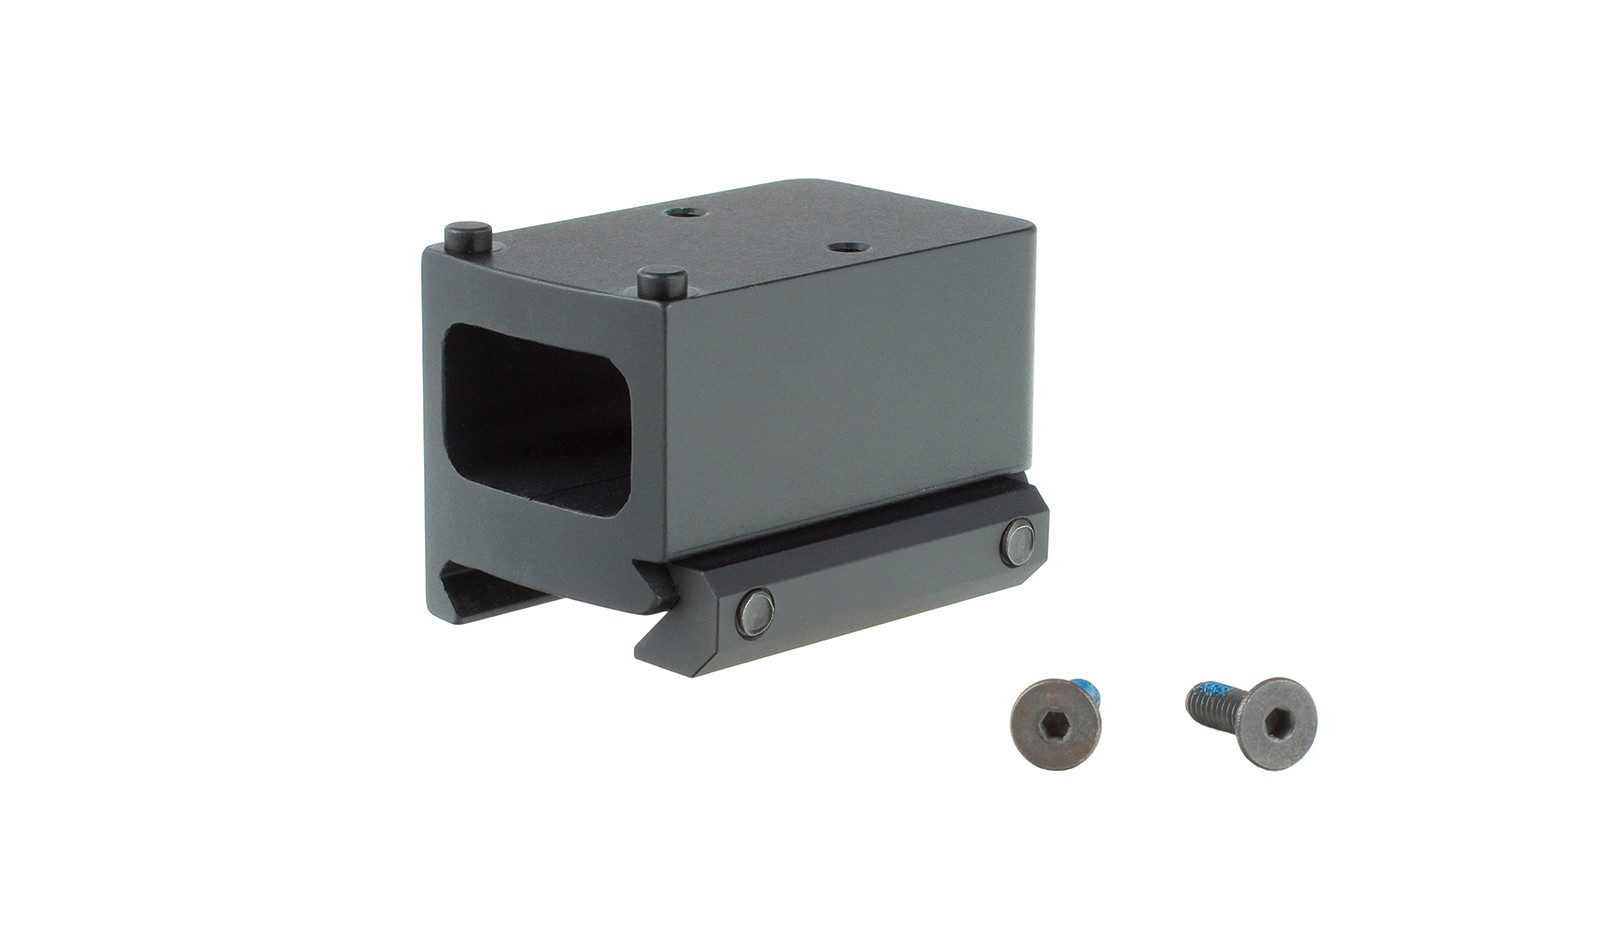 Trijicon® Picatinny Rail Mount Adapter for Trijicon RMR®/ SRO®- Lightweight 1/3 Lower Cowitness